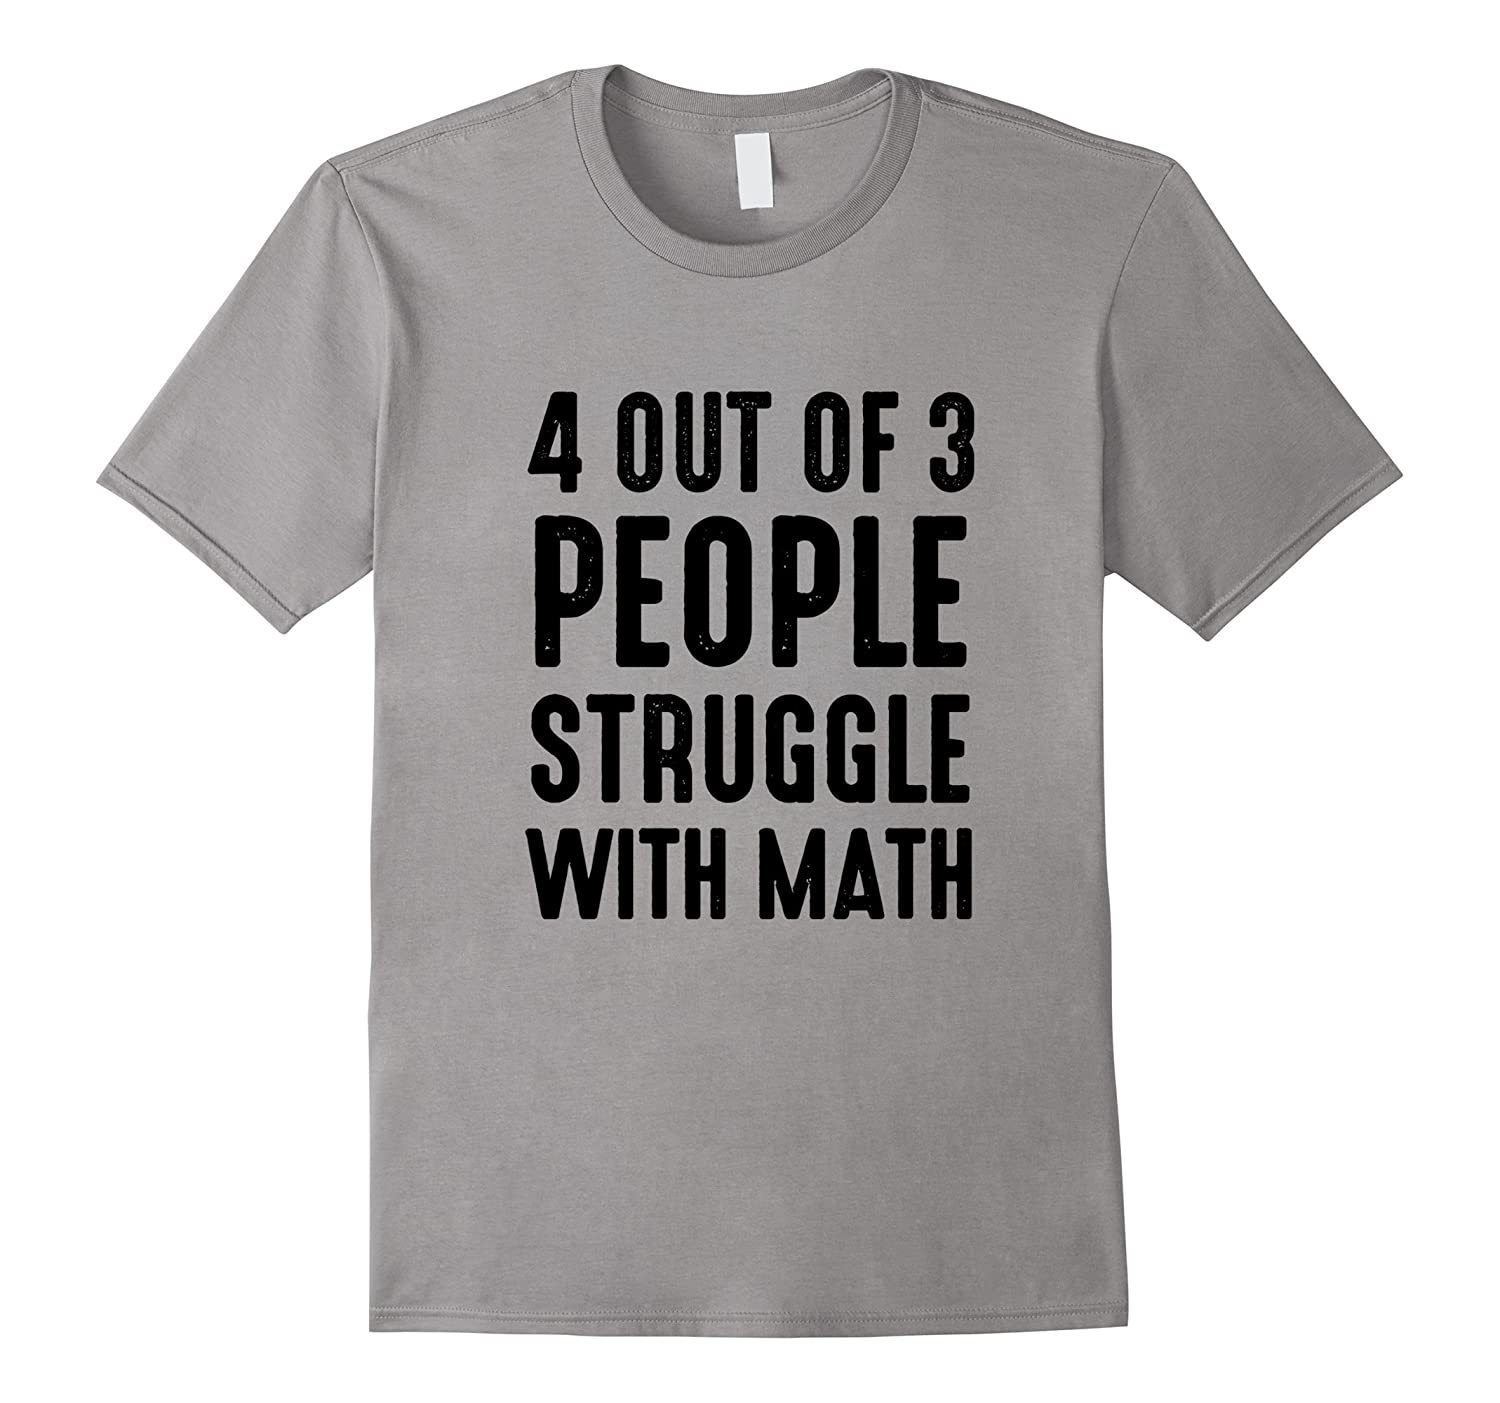 4 out of 3 People Struggle with Math Authentic T shirt 2016-CL